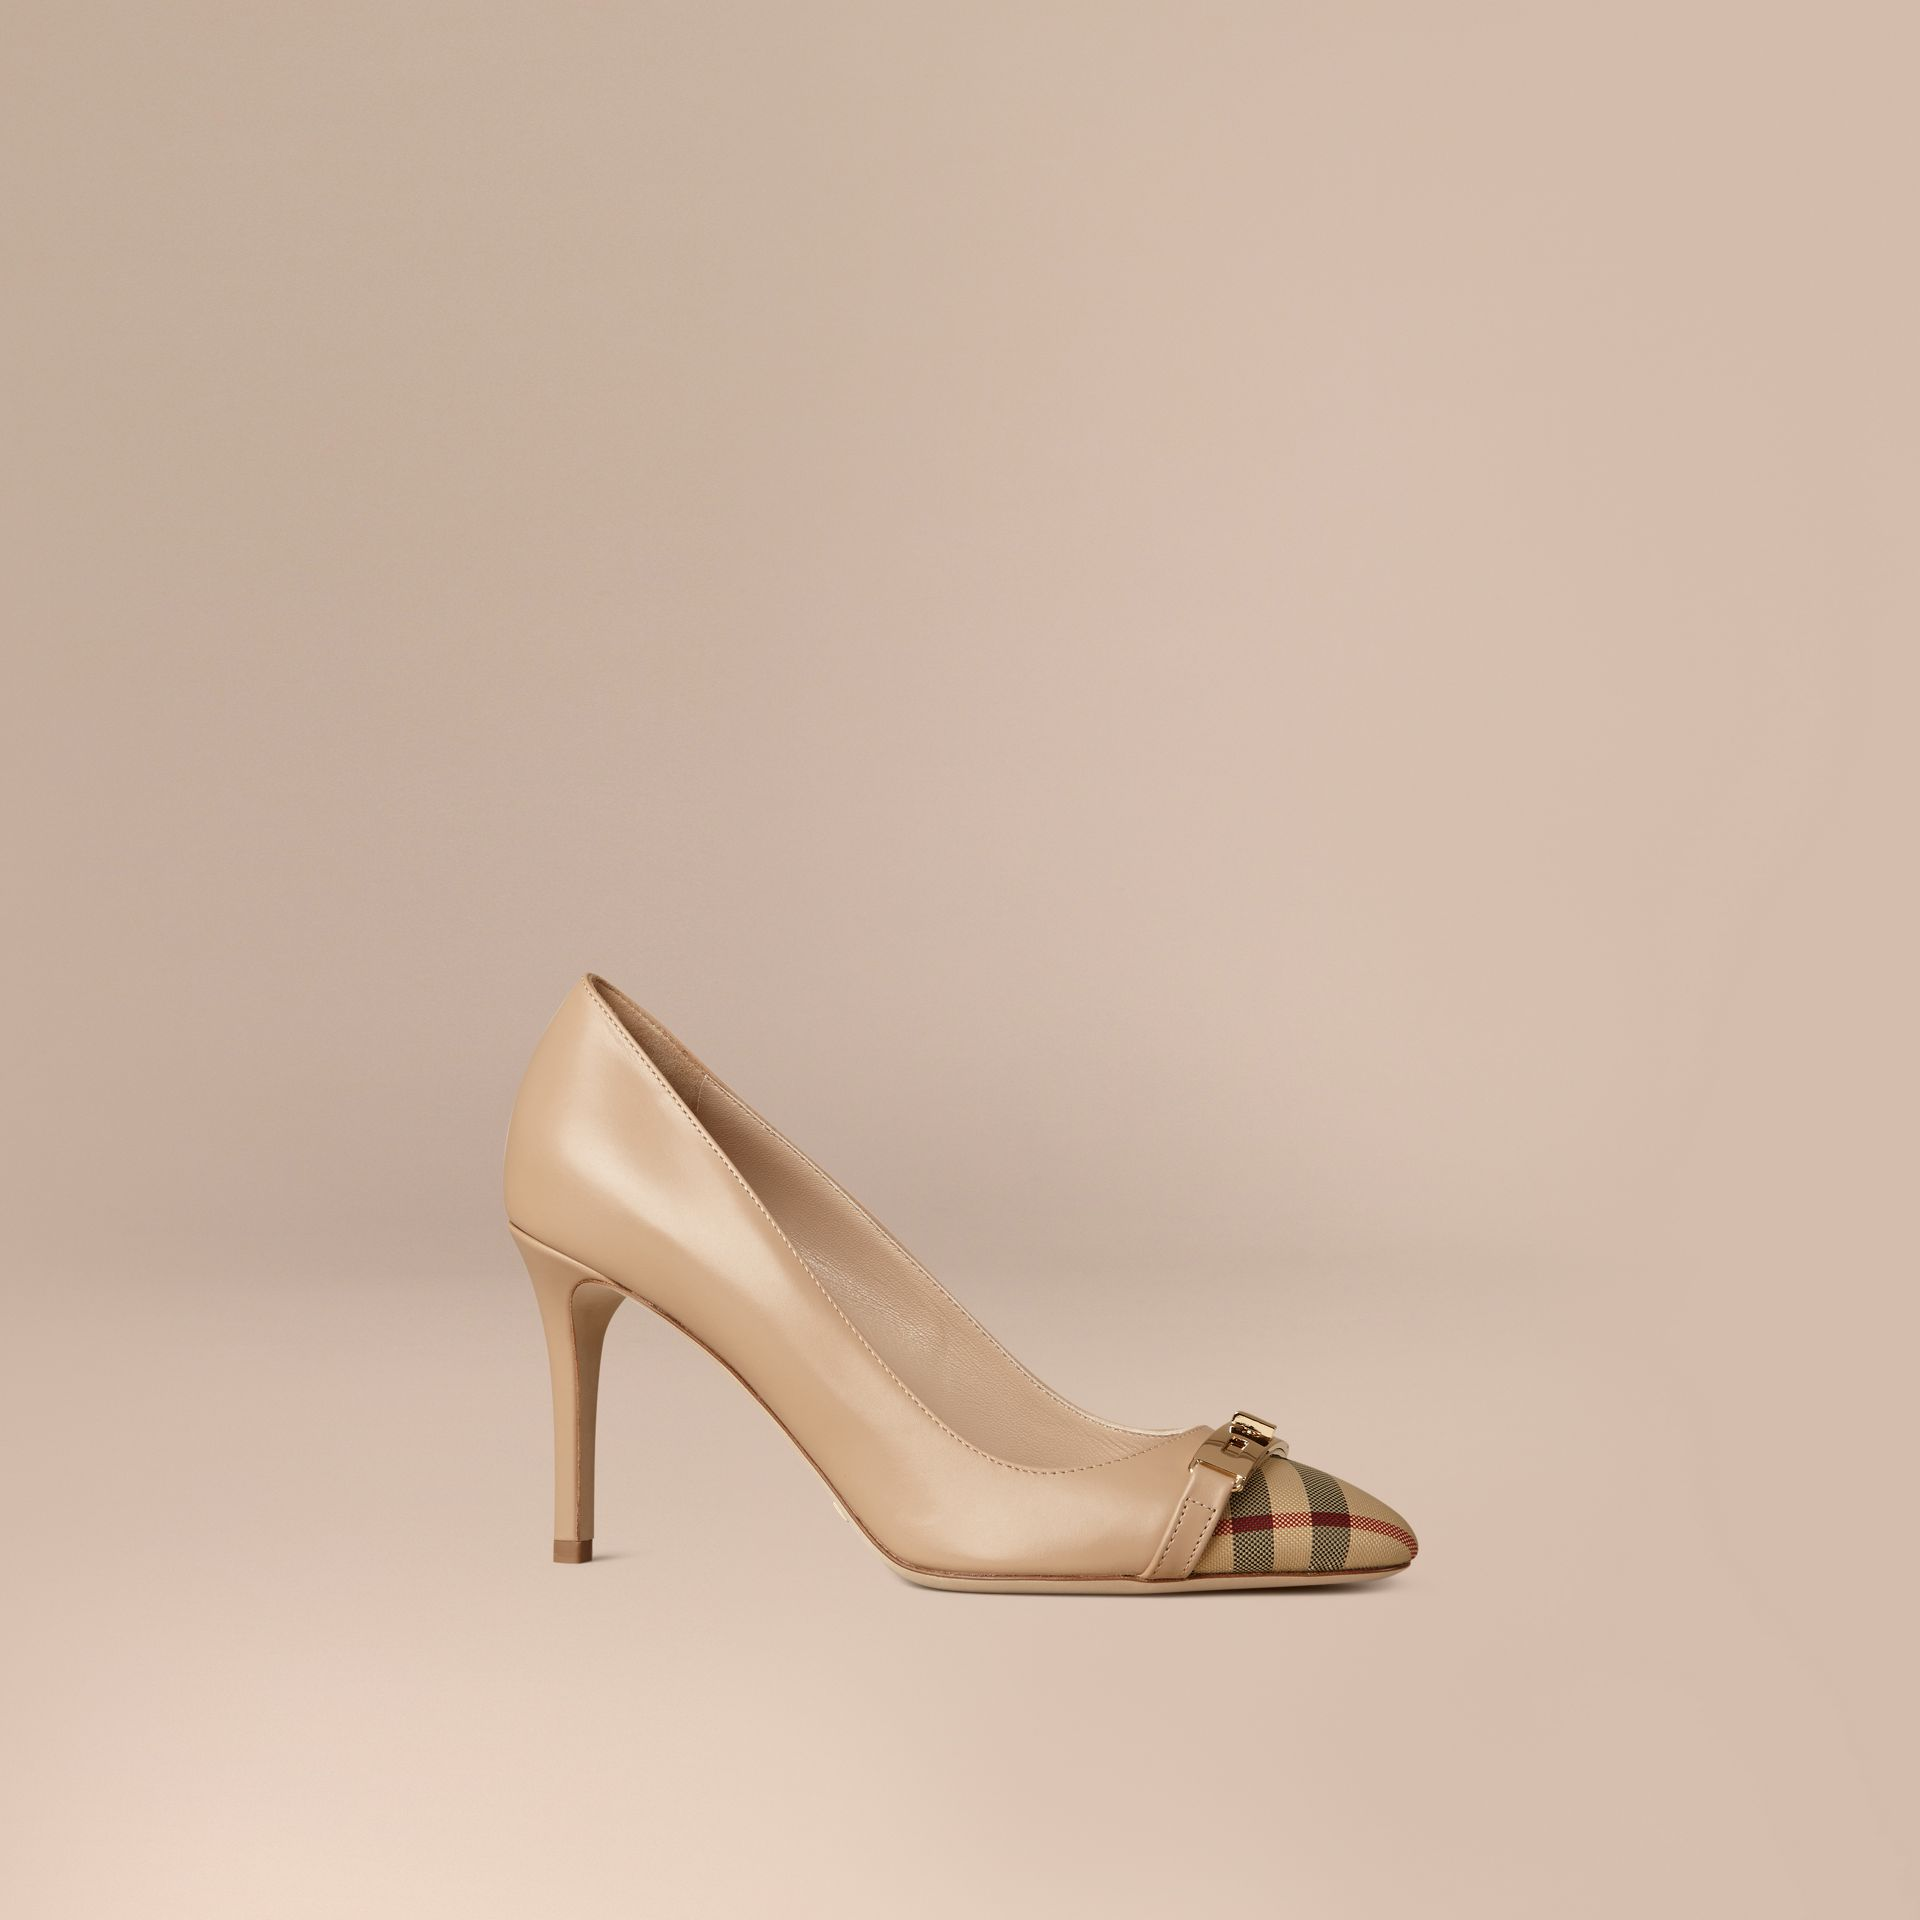 Horseferry Check Leather Pumps in Light Nude - Women | Burberry Canada - gallery image 1